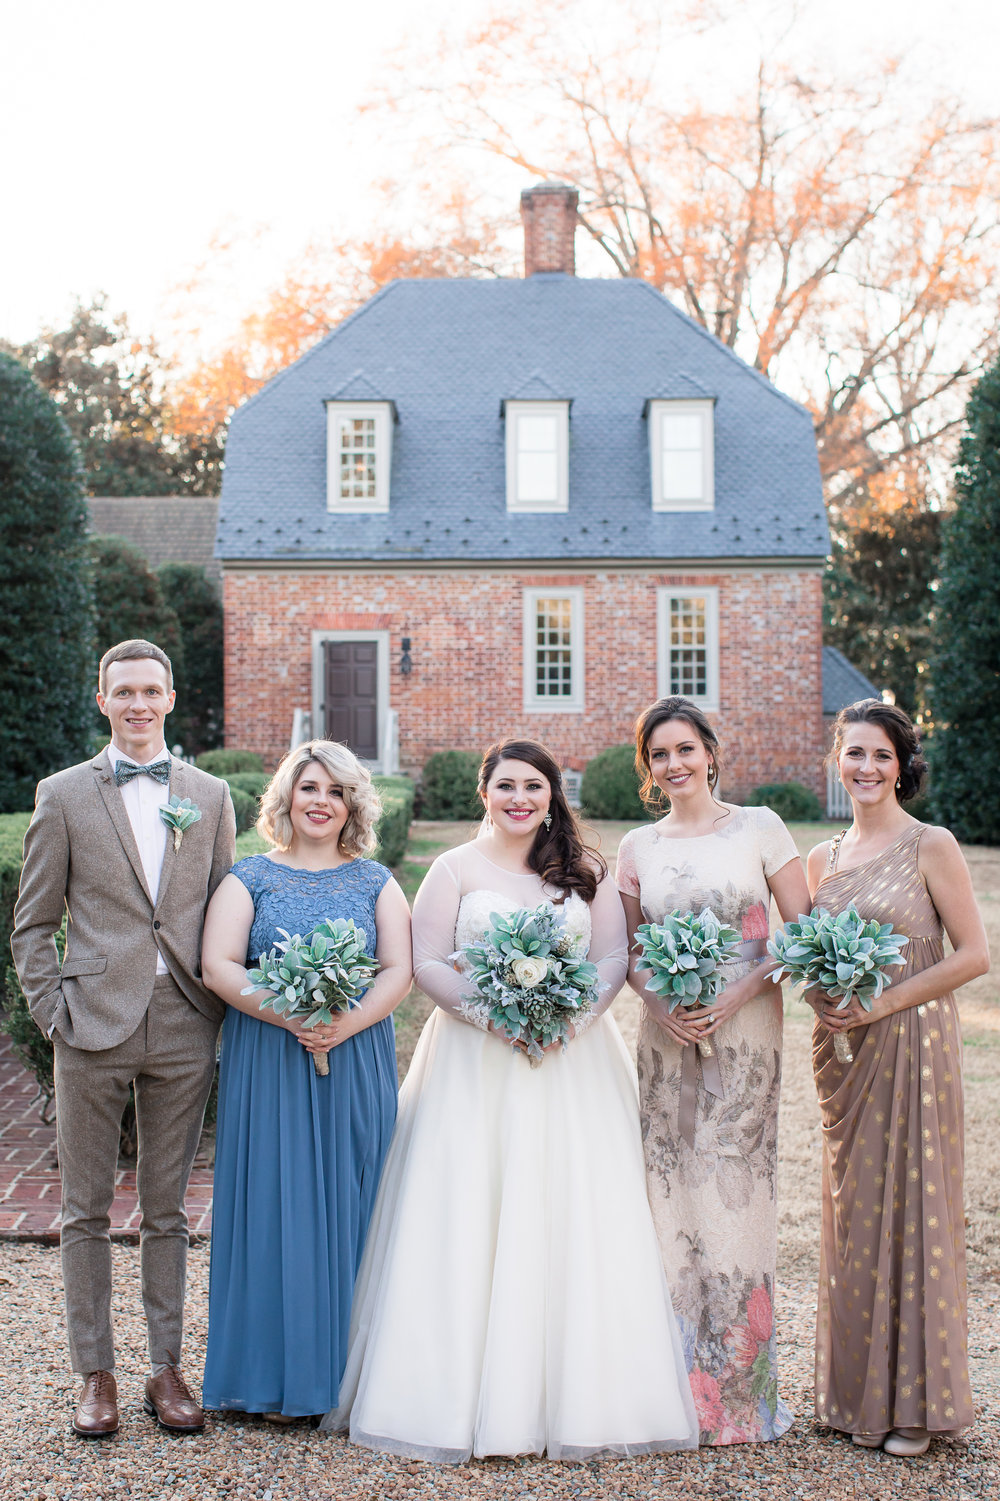 Lindsay _ Justin Bridal Party-44.jpg